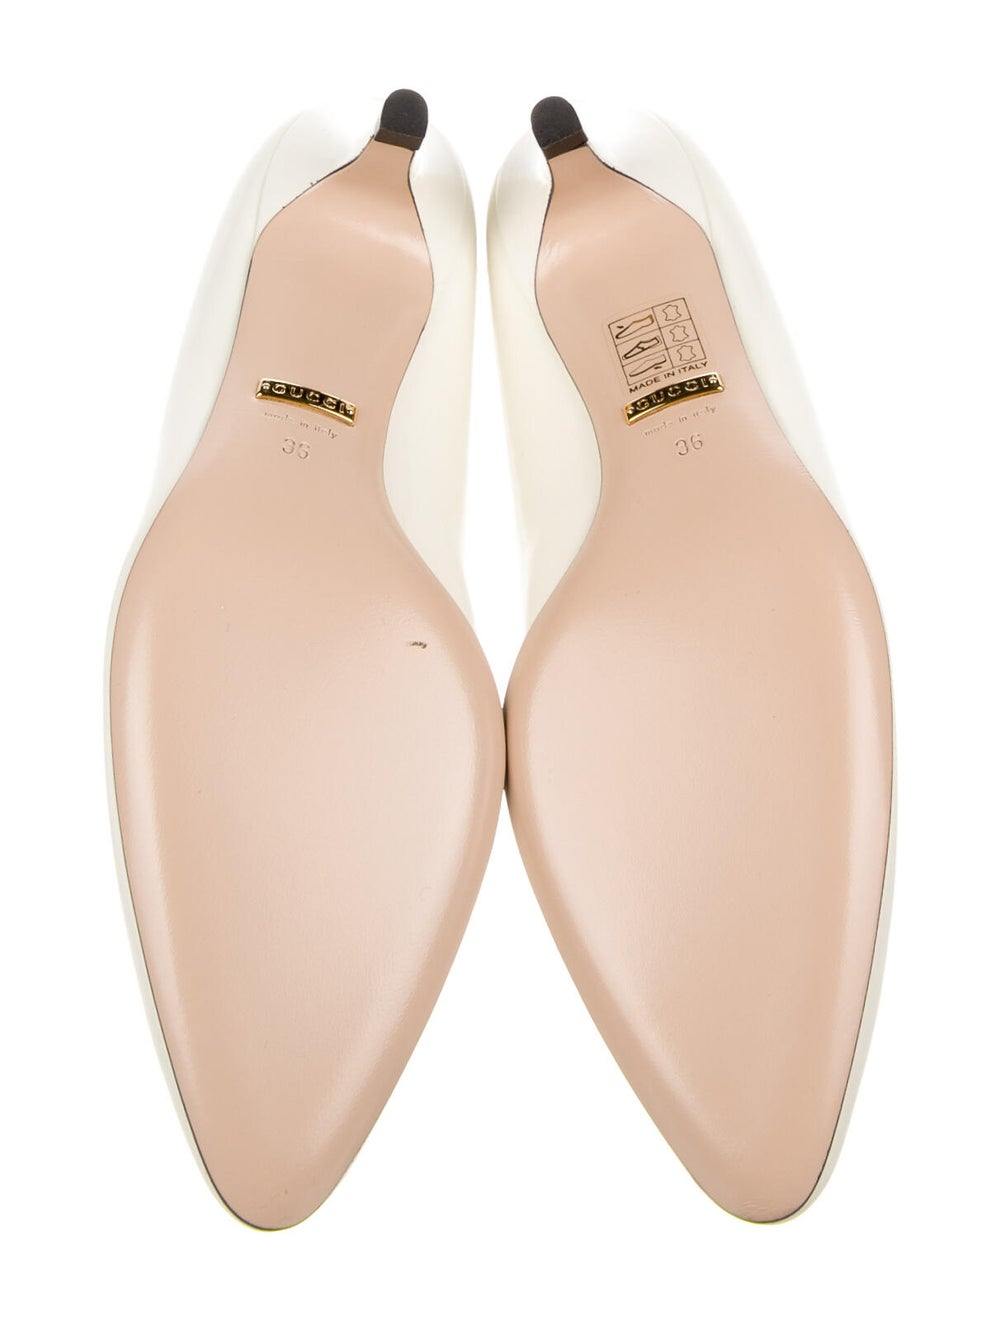 Gucci Leather Crystal Embellishments Pumps - image 5